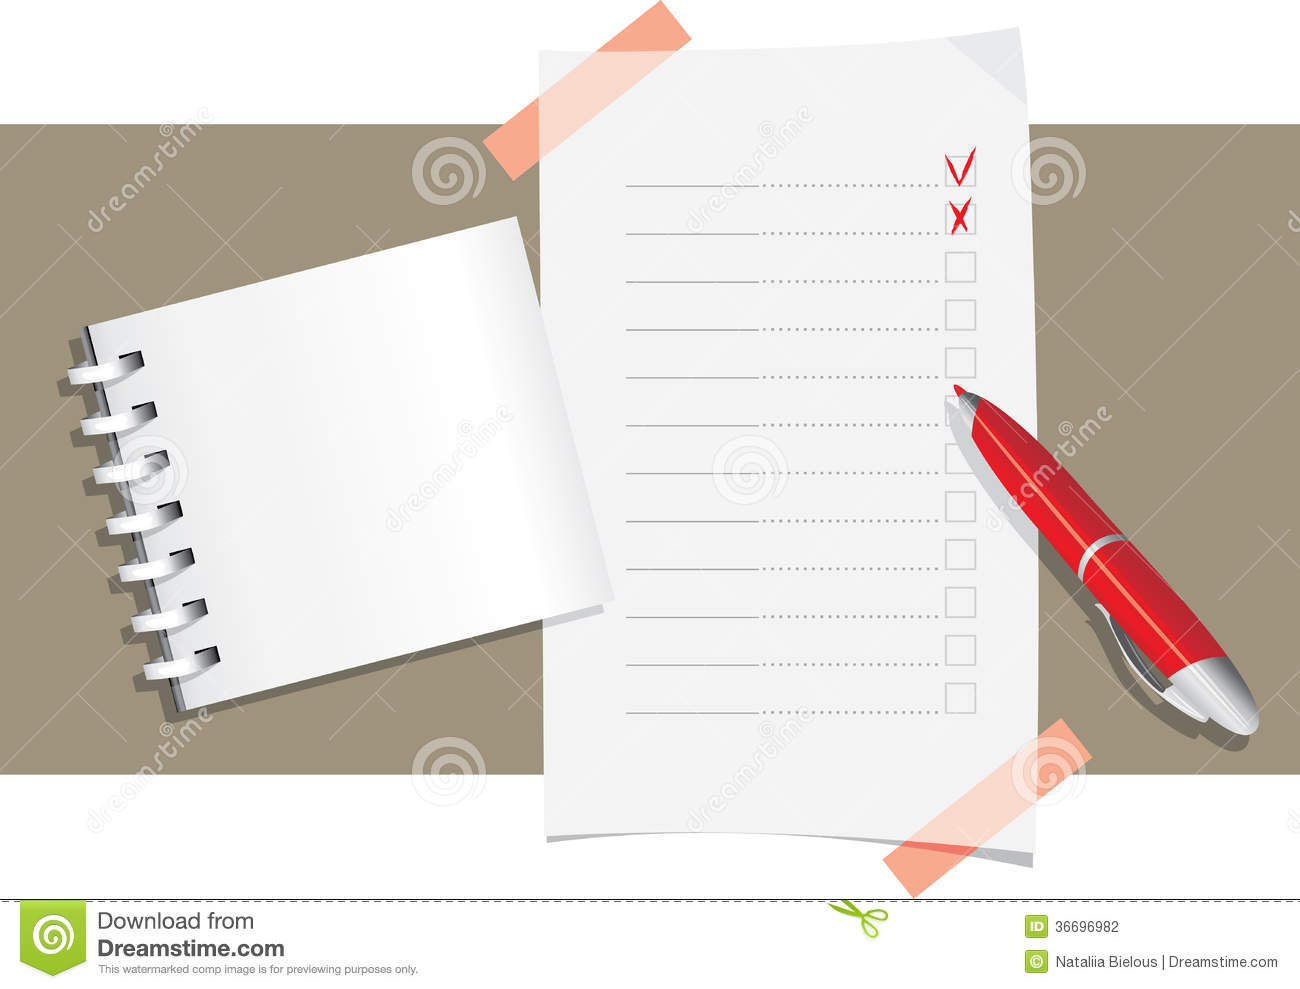 Ball pen, notepad and application form template. Illustration.